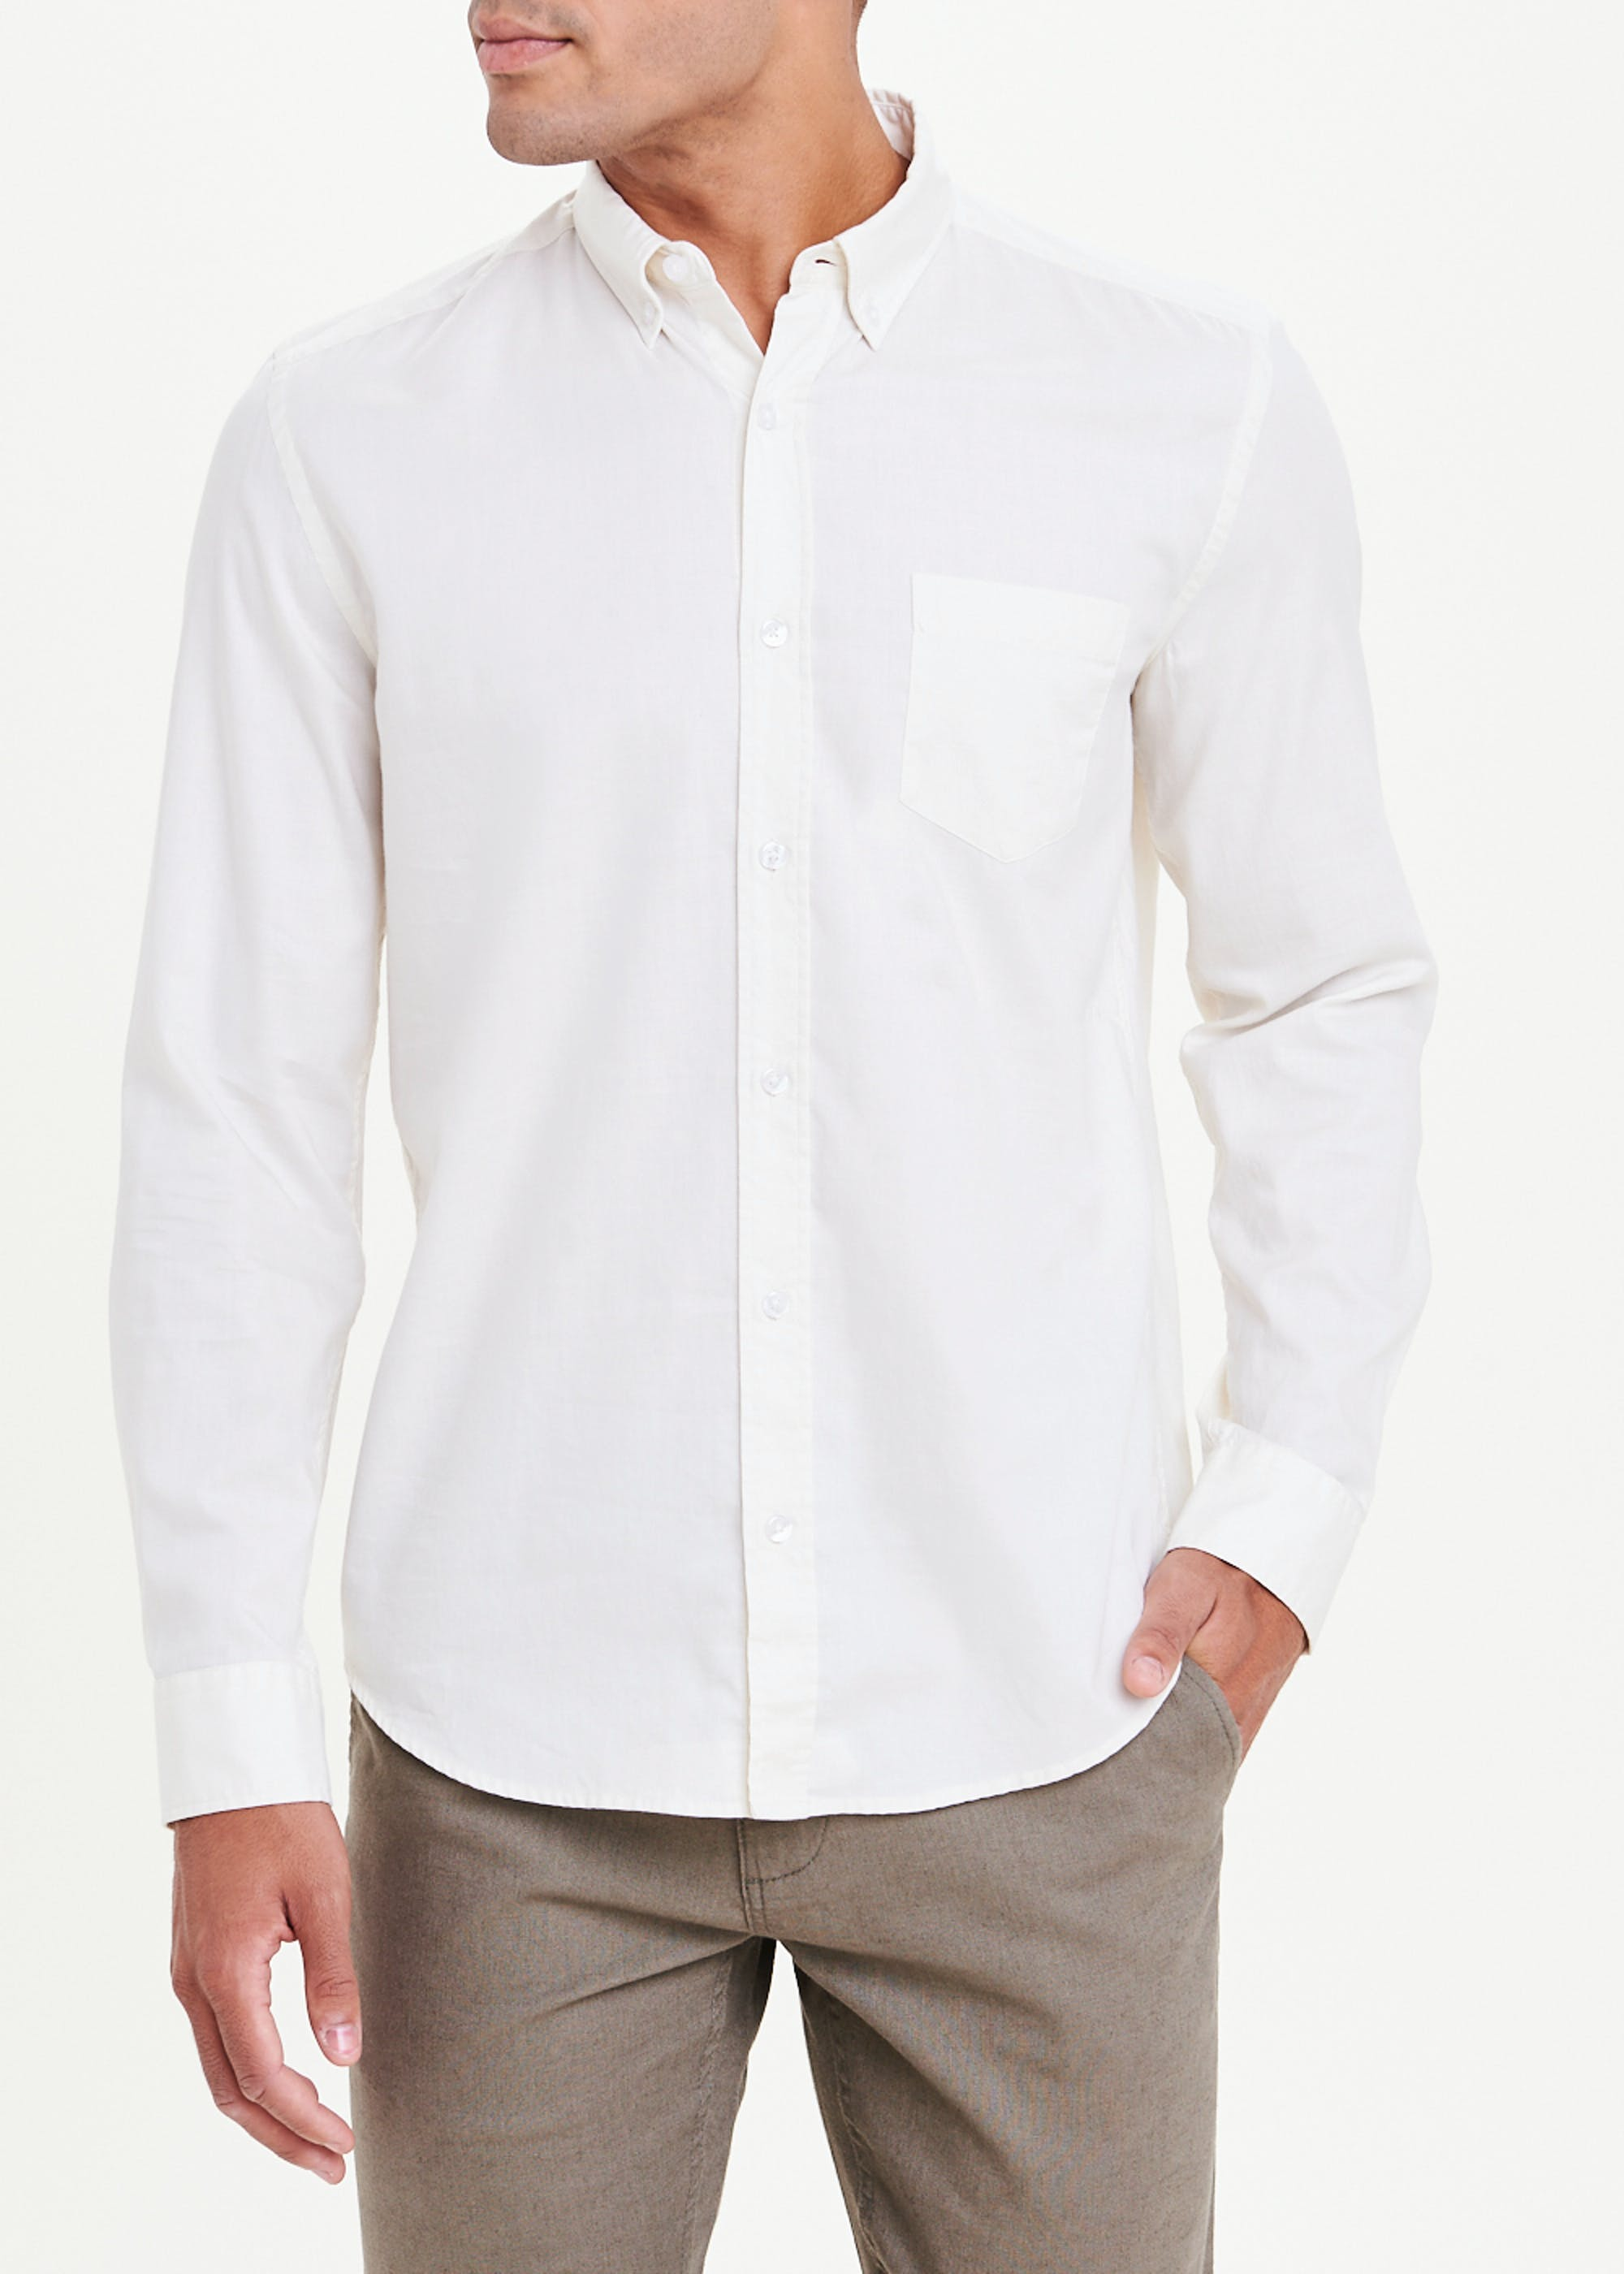 Long Sleeve Twill Shirt Beige s8lzZz